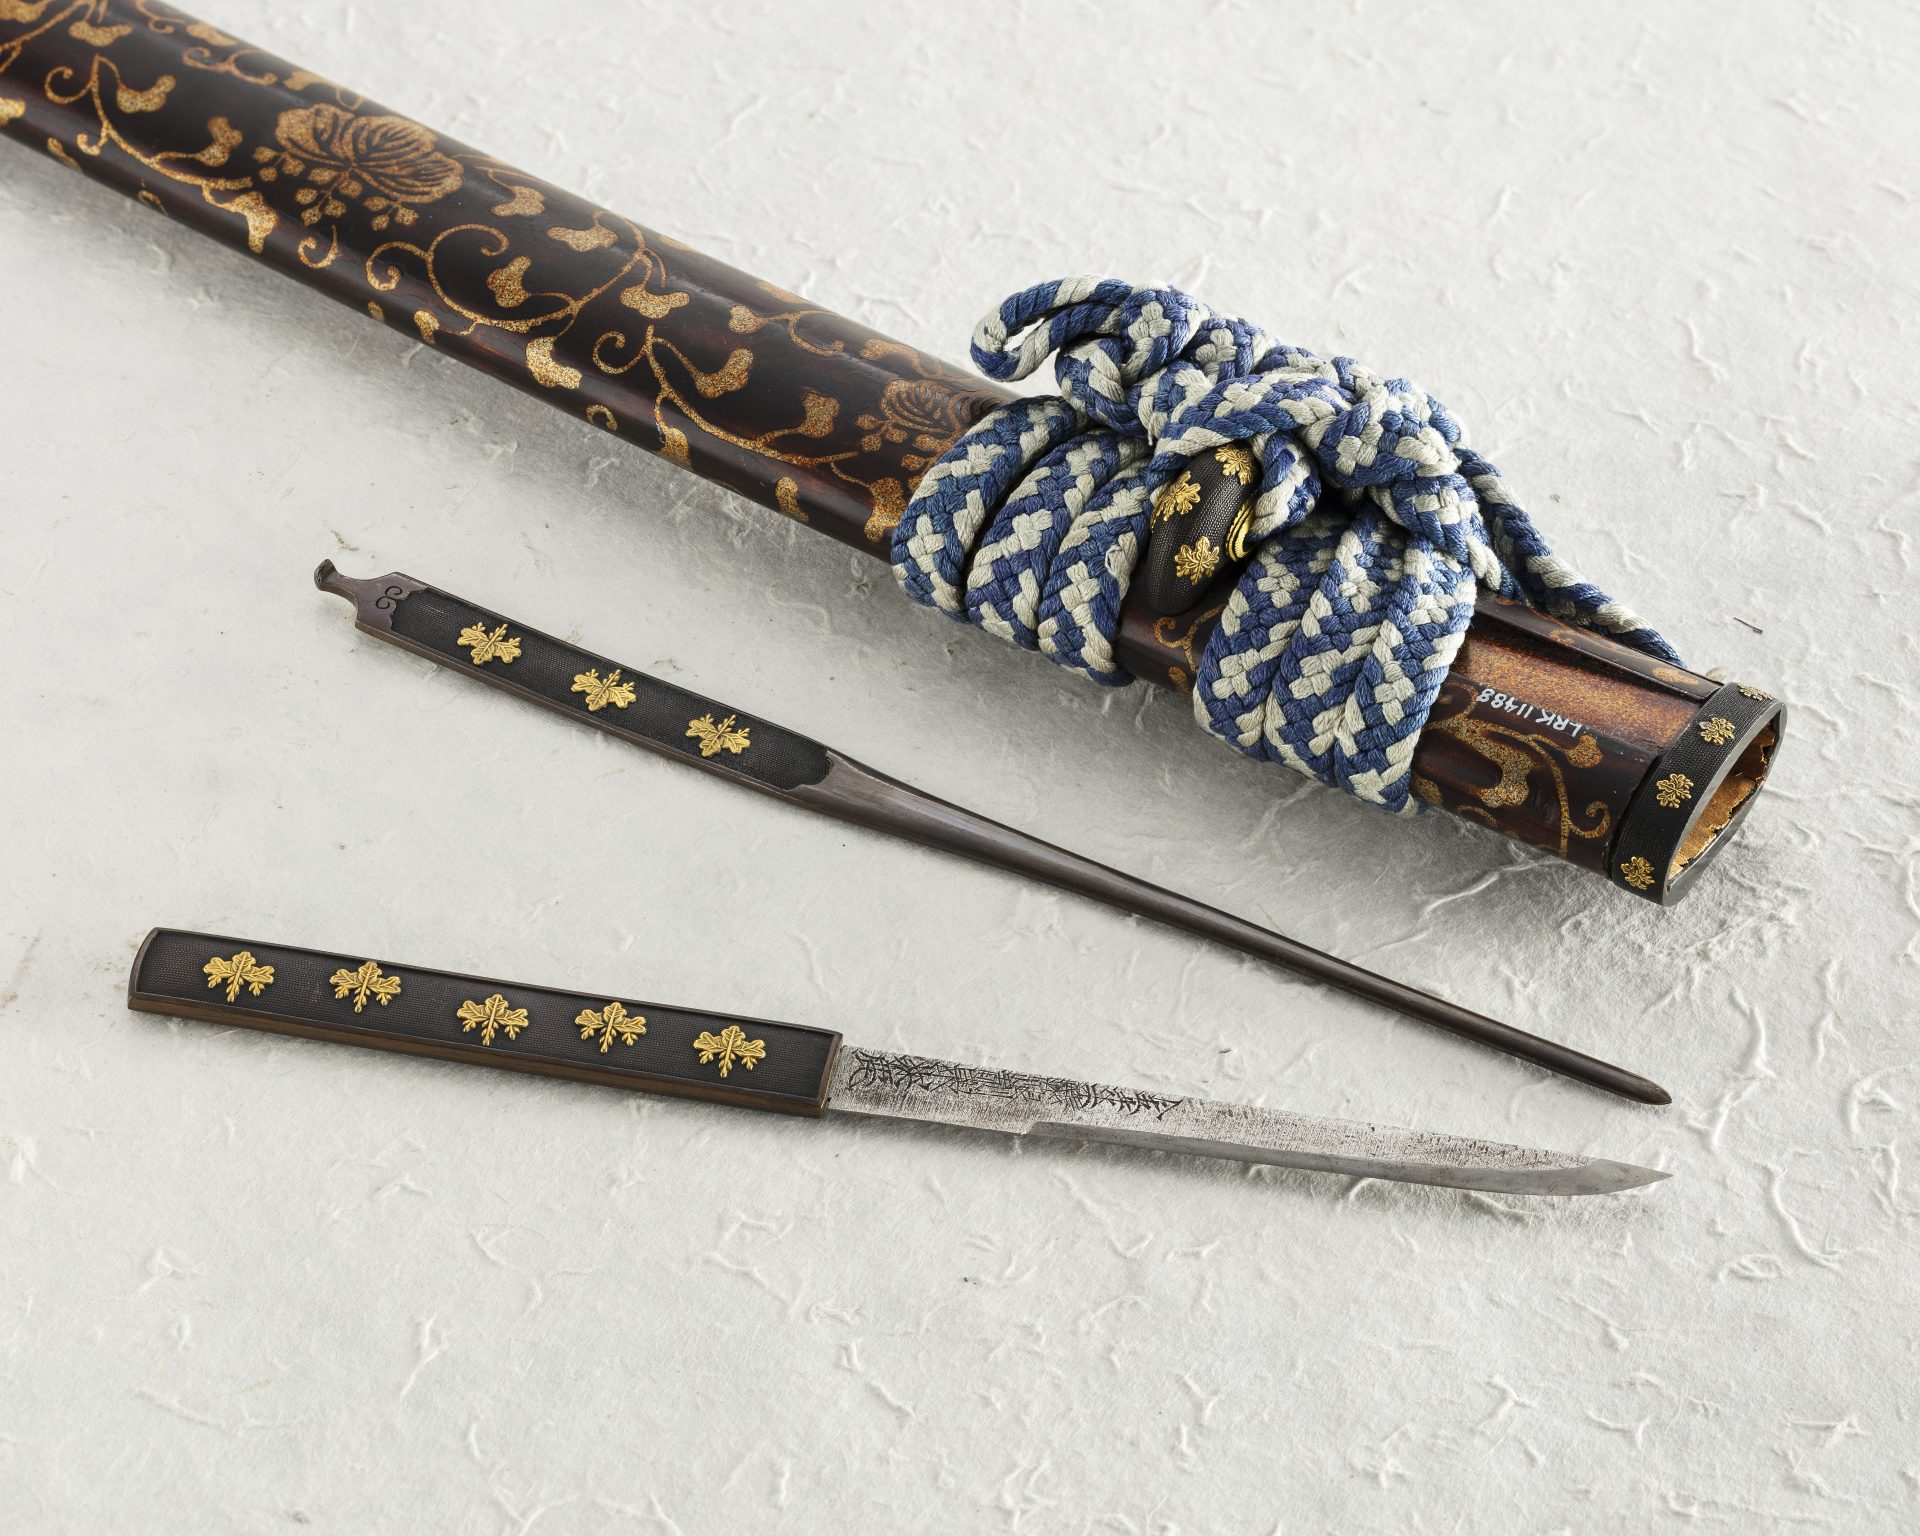 A scabbard with two small implements.